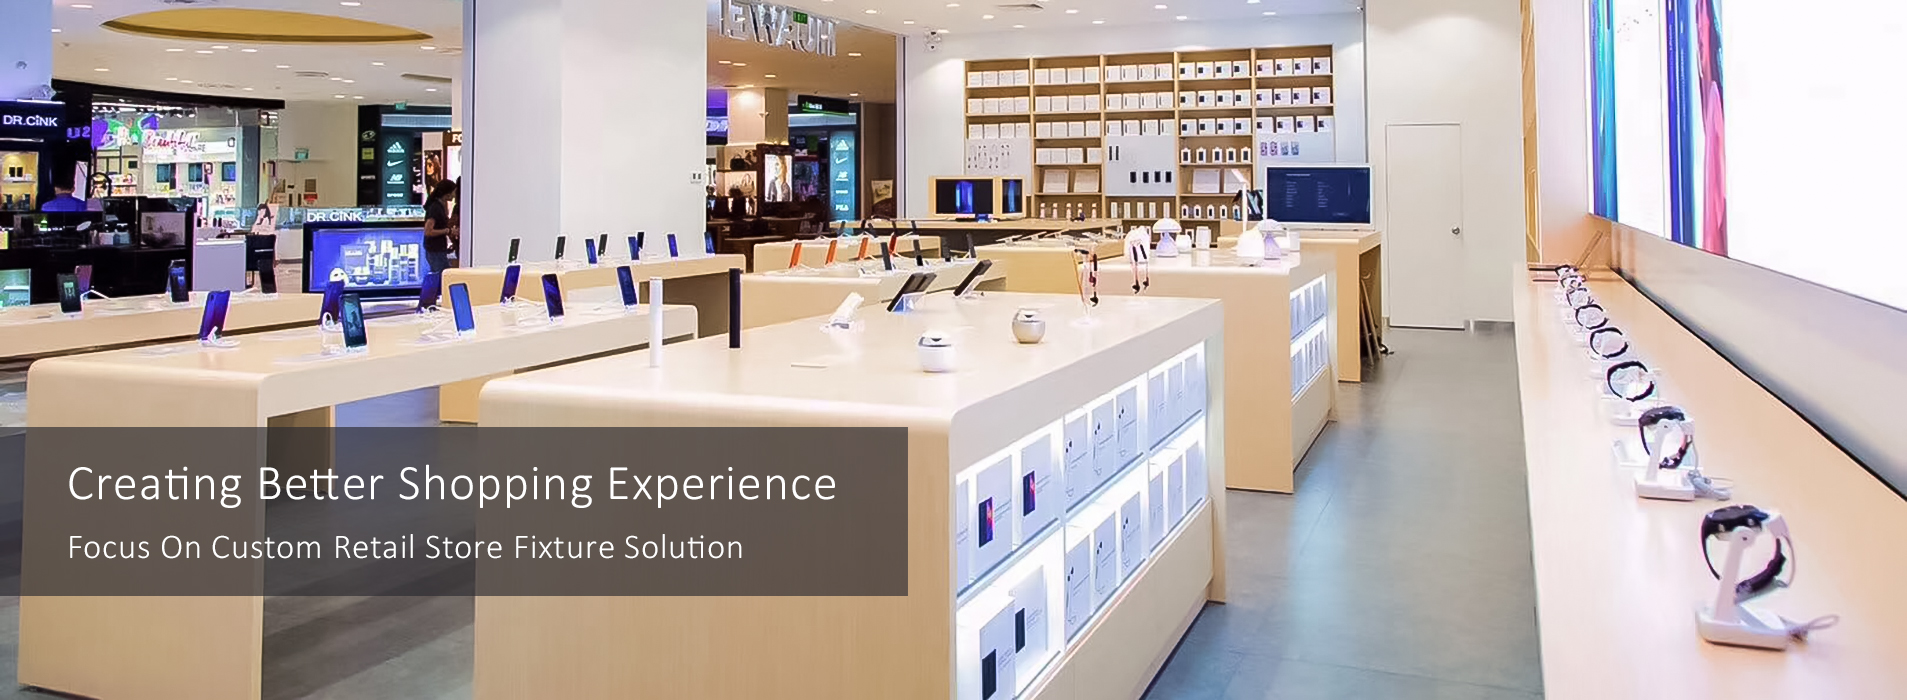 RECHI Focus On Custom Retail Store Fixture Solution for Retail Electronic Store